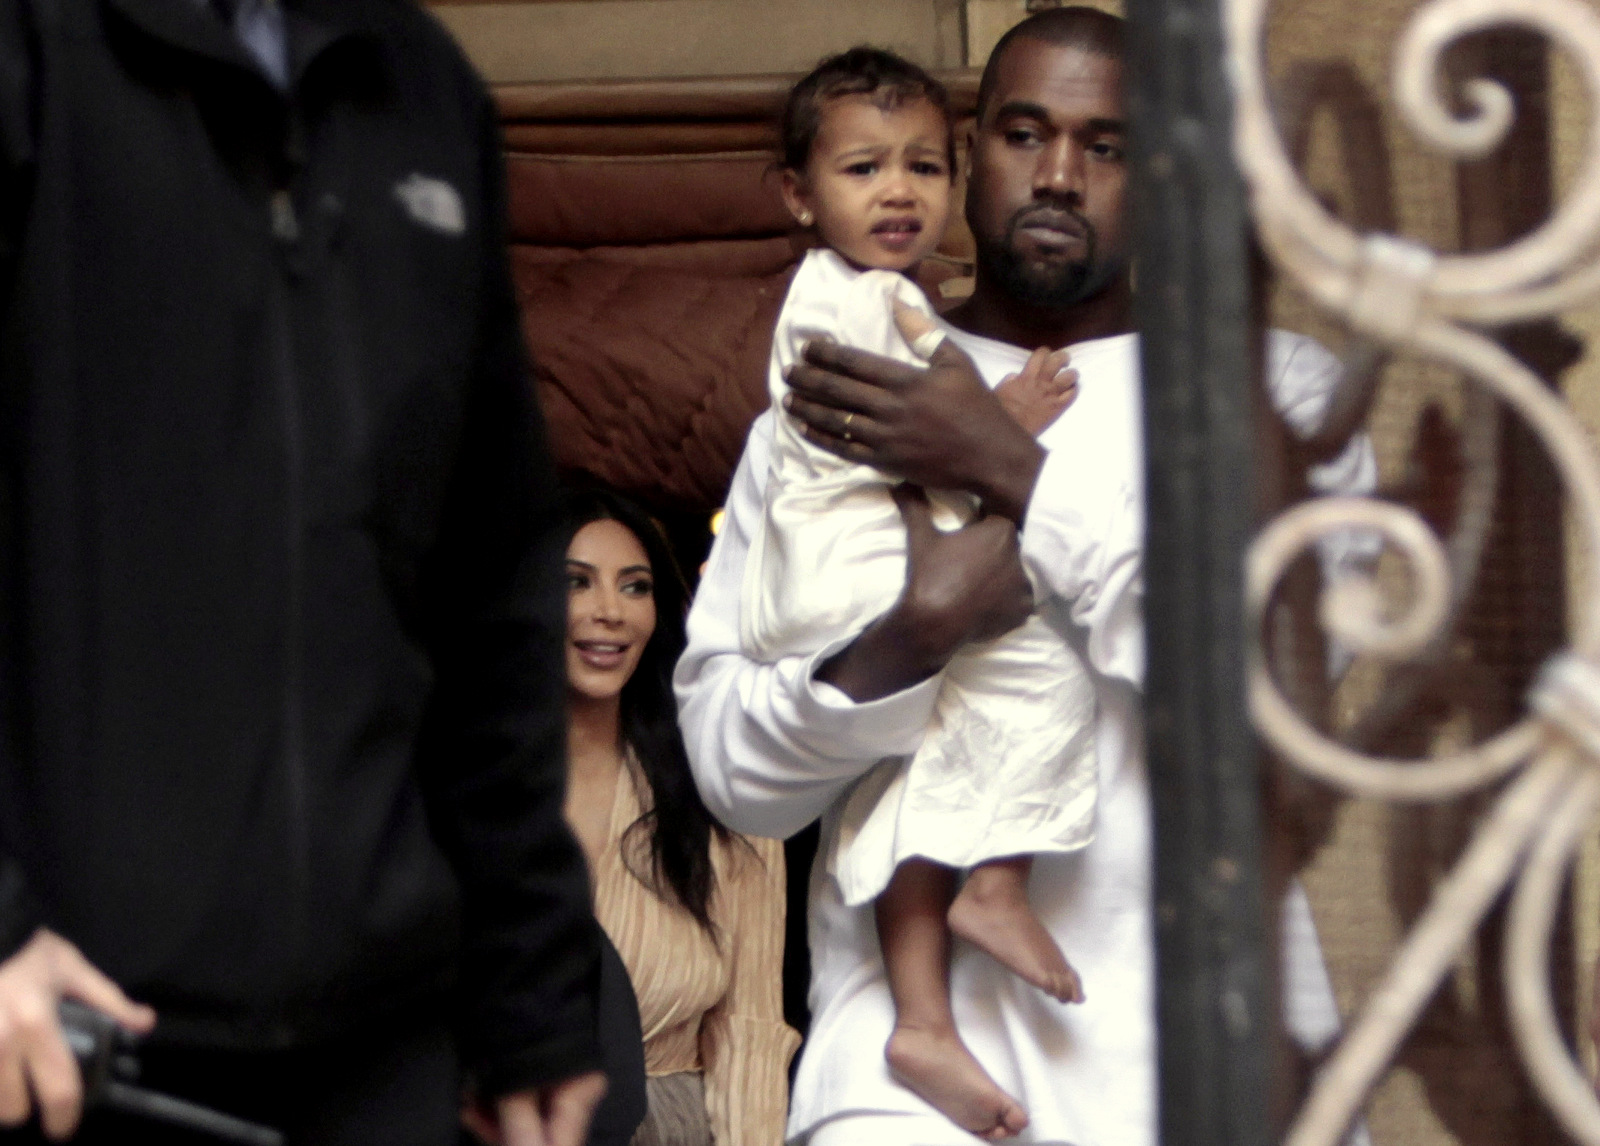 Kim Kardashian, a US reality TV star, and her husband Kanye West holding their daughter North West, walk inside Armenian St. James Cathedral, in Jerusalem, Monday, April 13, 2015. (AP Photo/Mahmoud Illean)